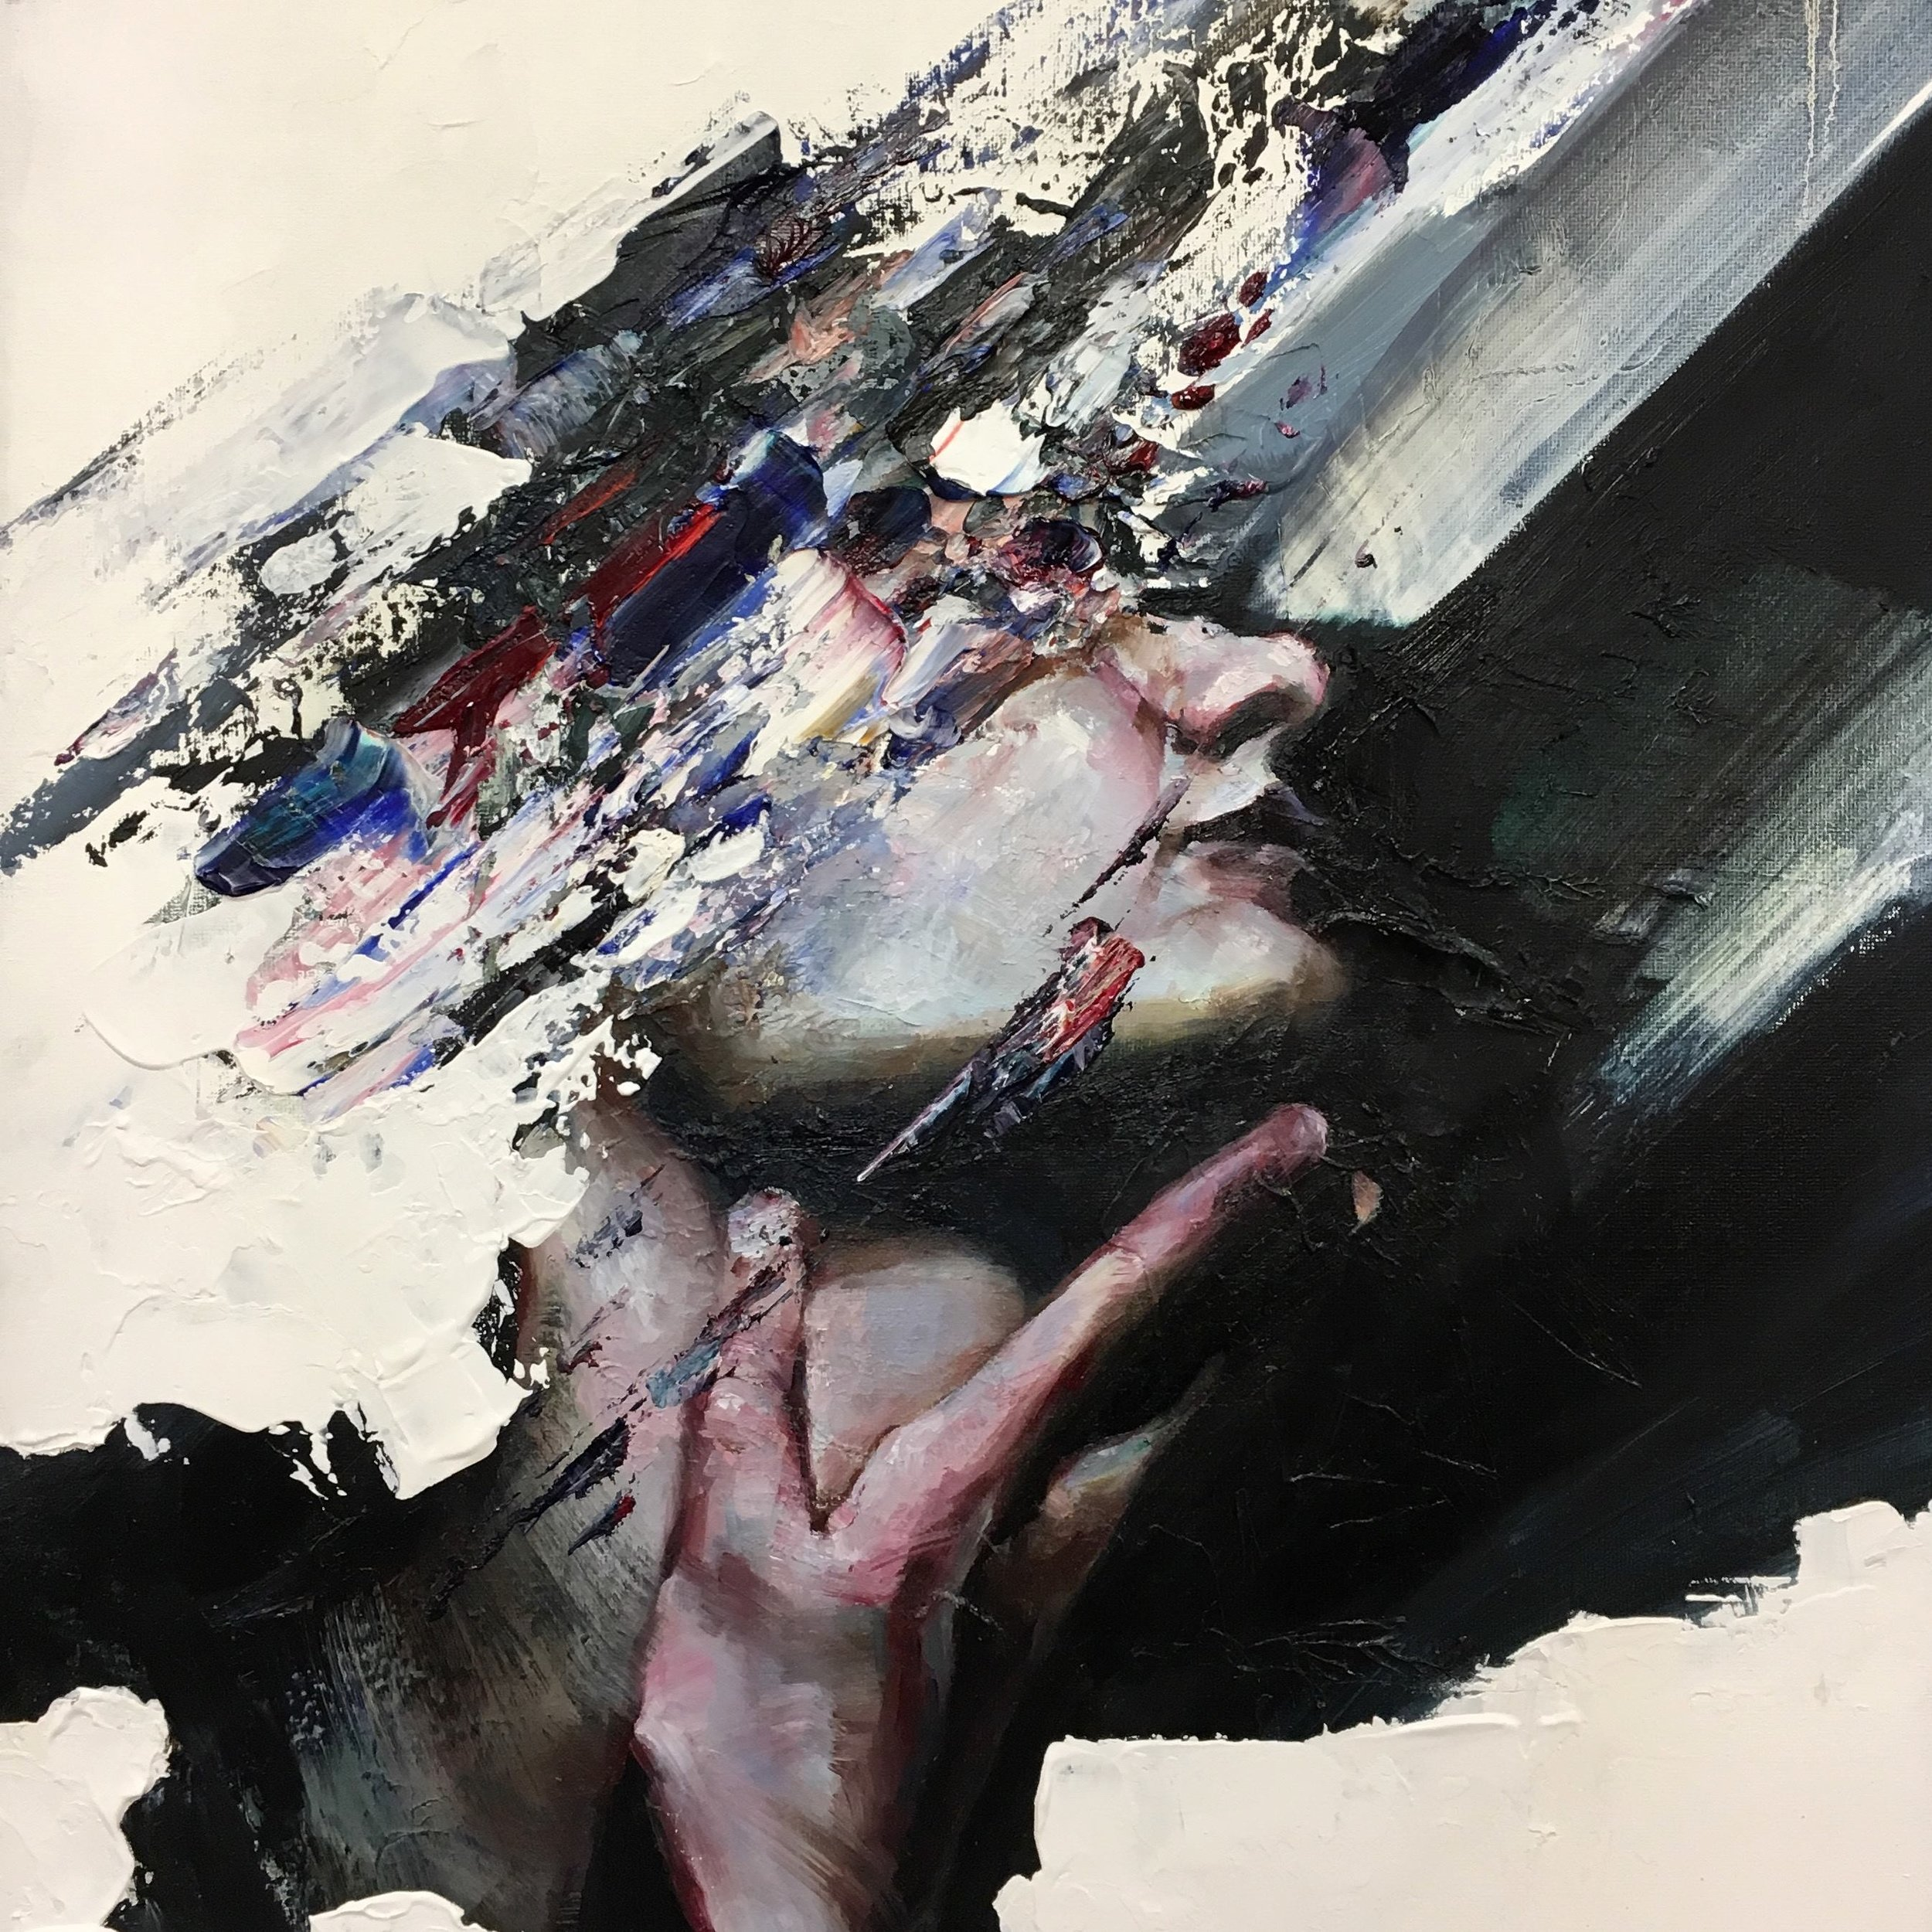 "Swoosh  by Anton Zhou   Swoosh  is 20"" x 16"" oil on canvas and embodies the idea of darkness consuming or tugging at us, in a way that extracts from our body a sense of identity."